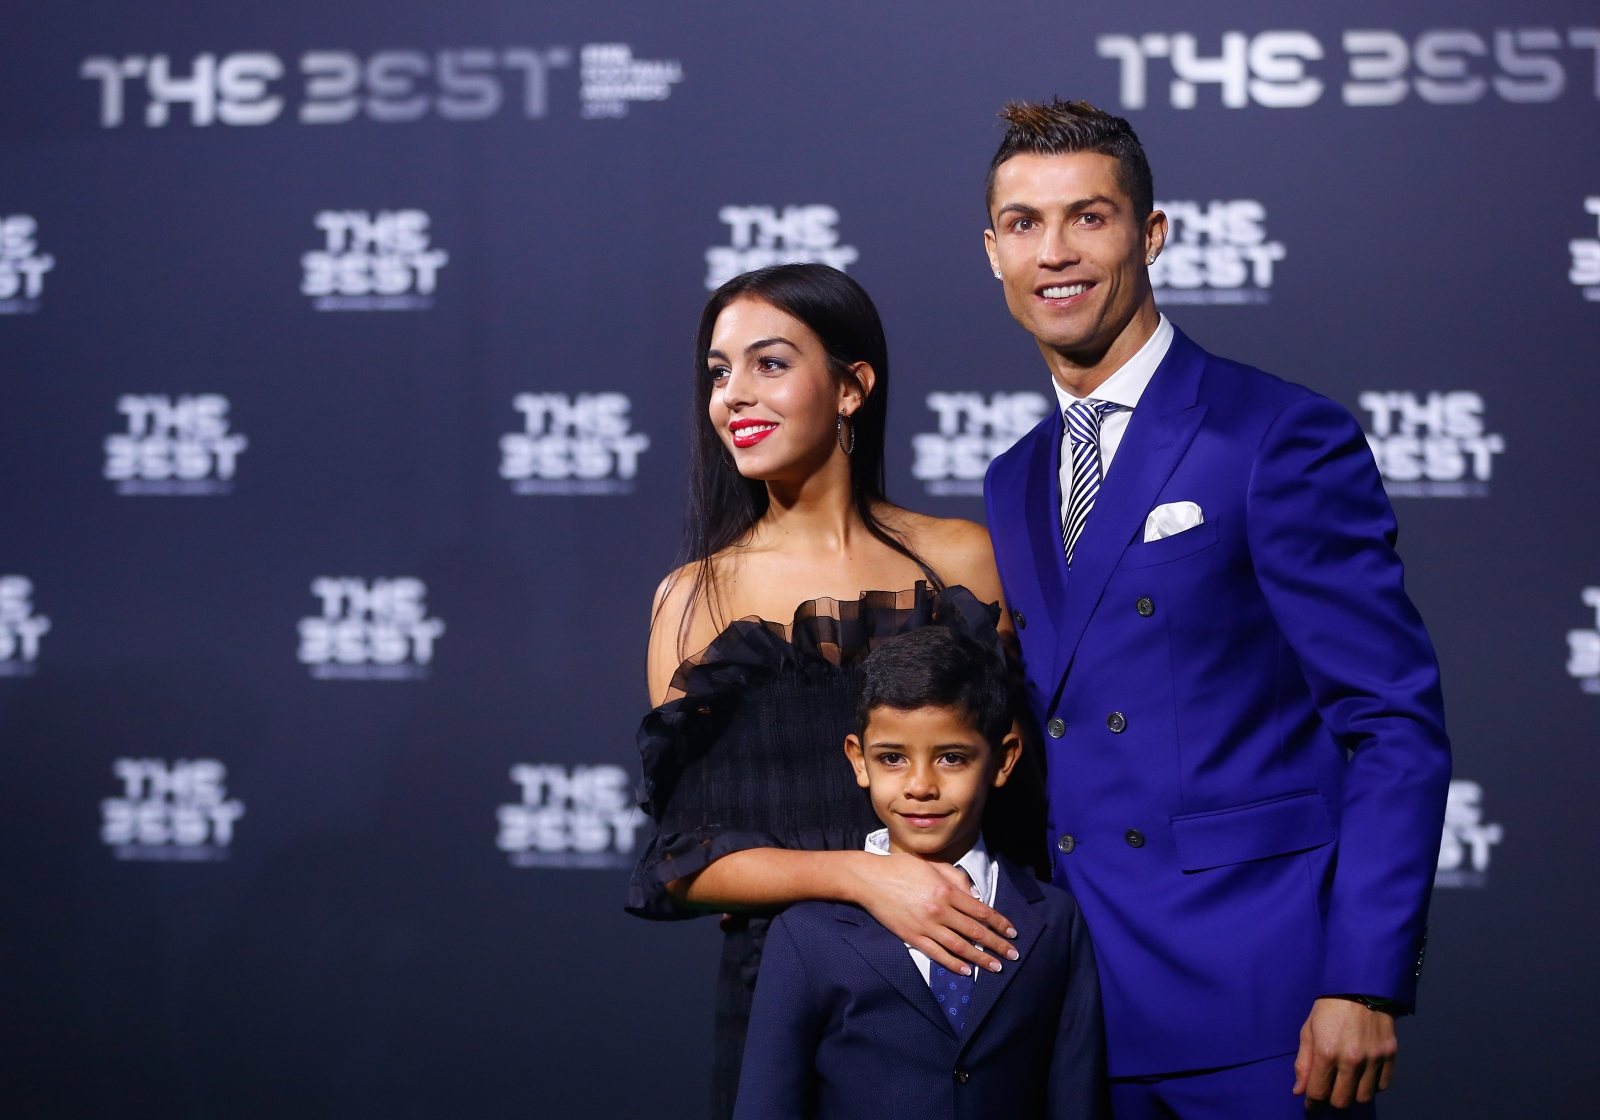 Is Cristiano Ronaldo's girlfriend pregnant? Here's what the Real Madrid star's mother has to say